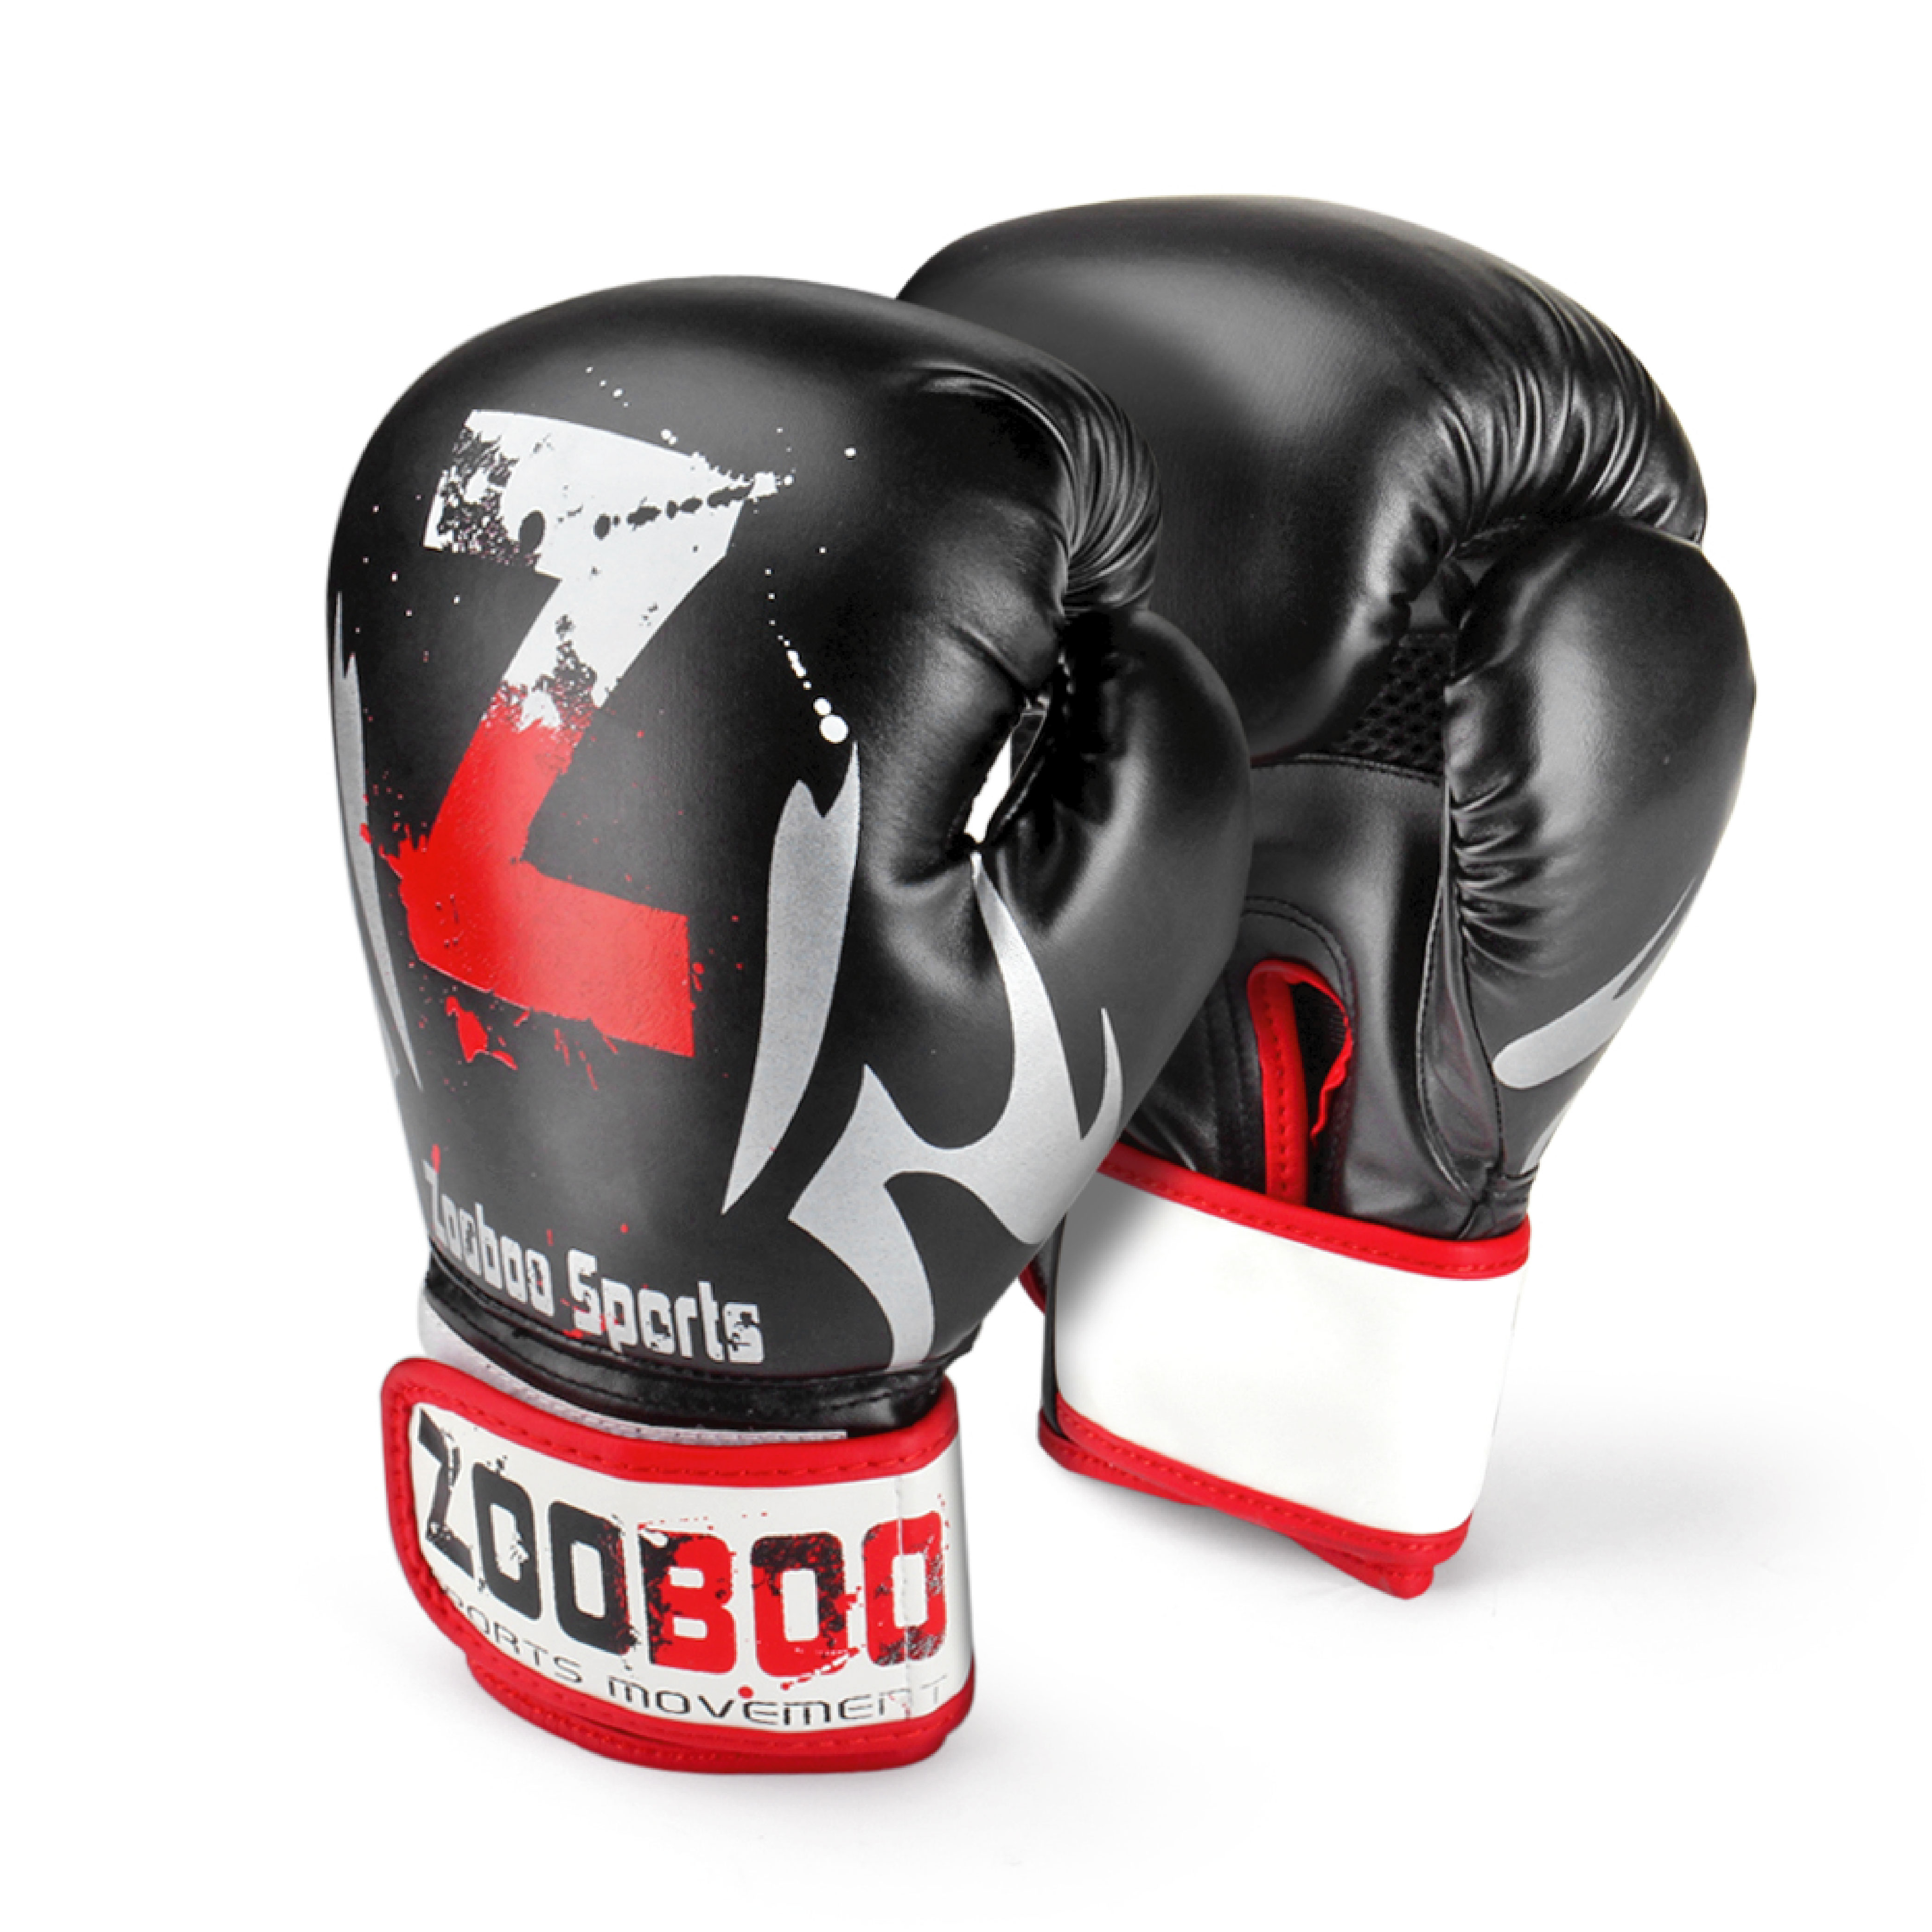 Personalized Fitness Gloves: Training Boxing Gloves Grappling UFC Sparring Fight Punch